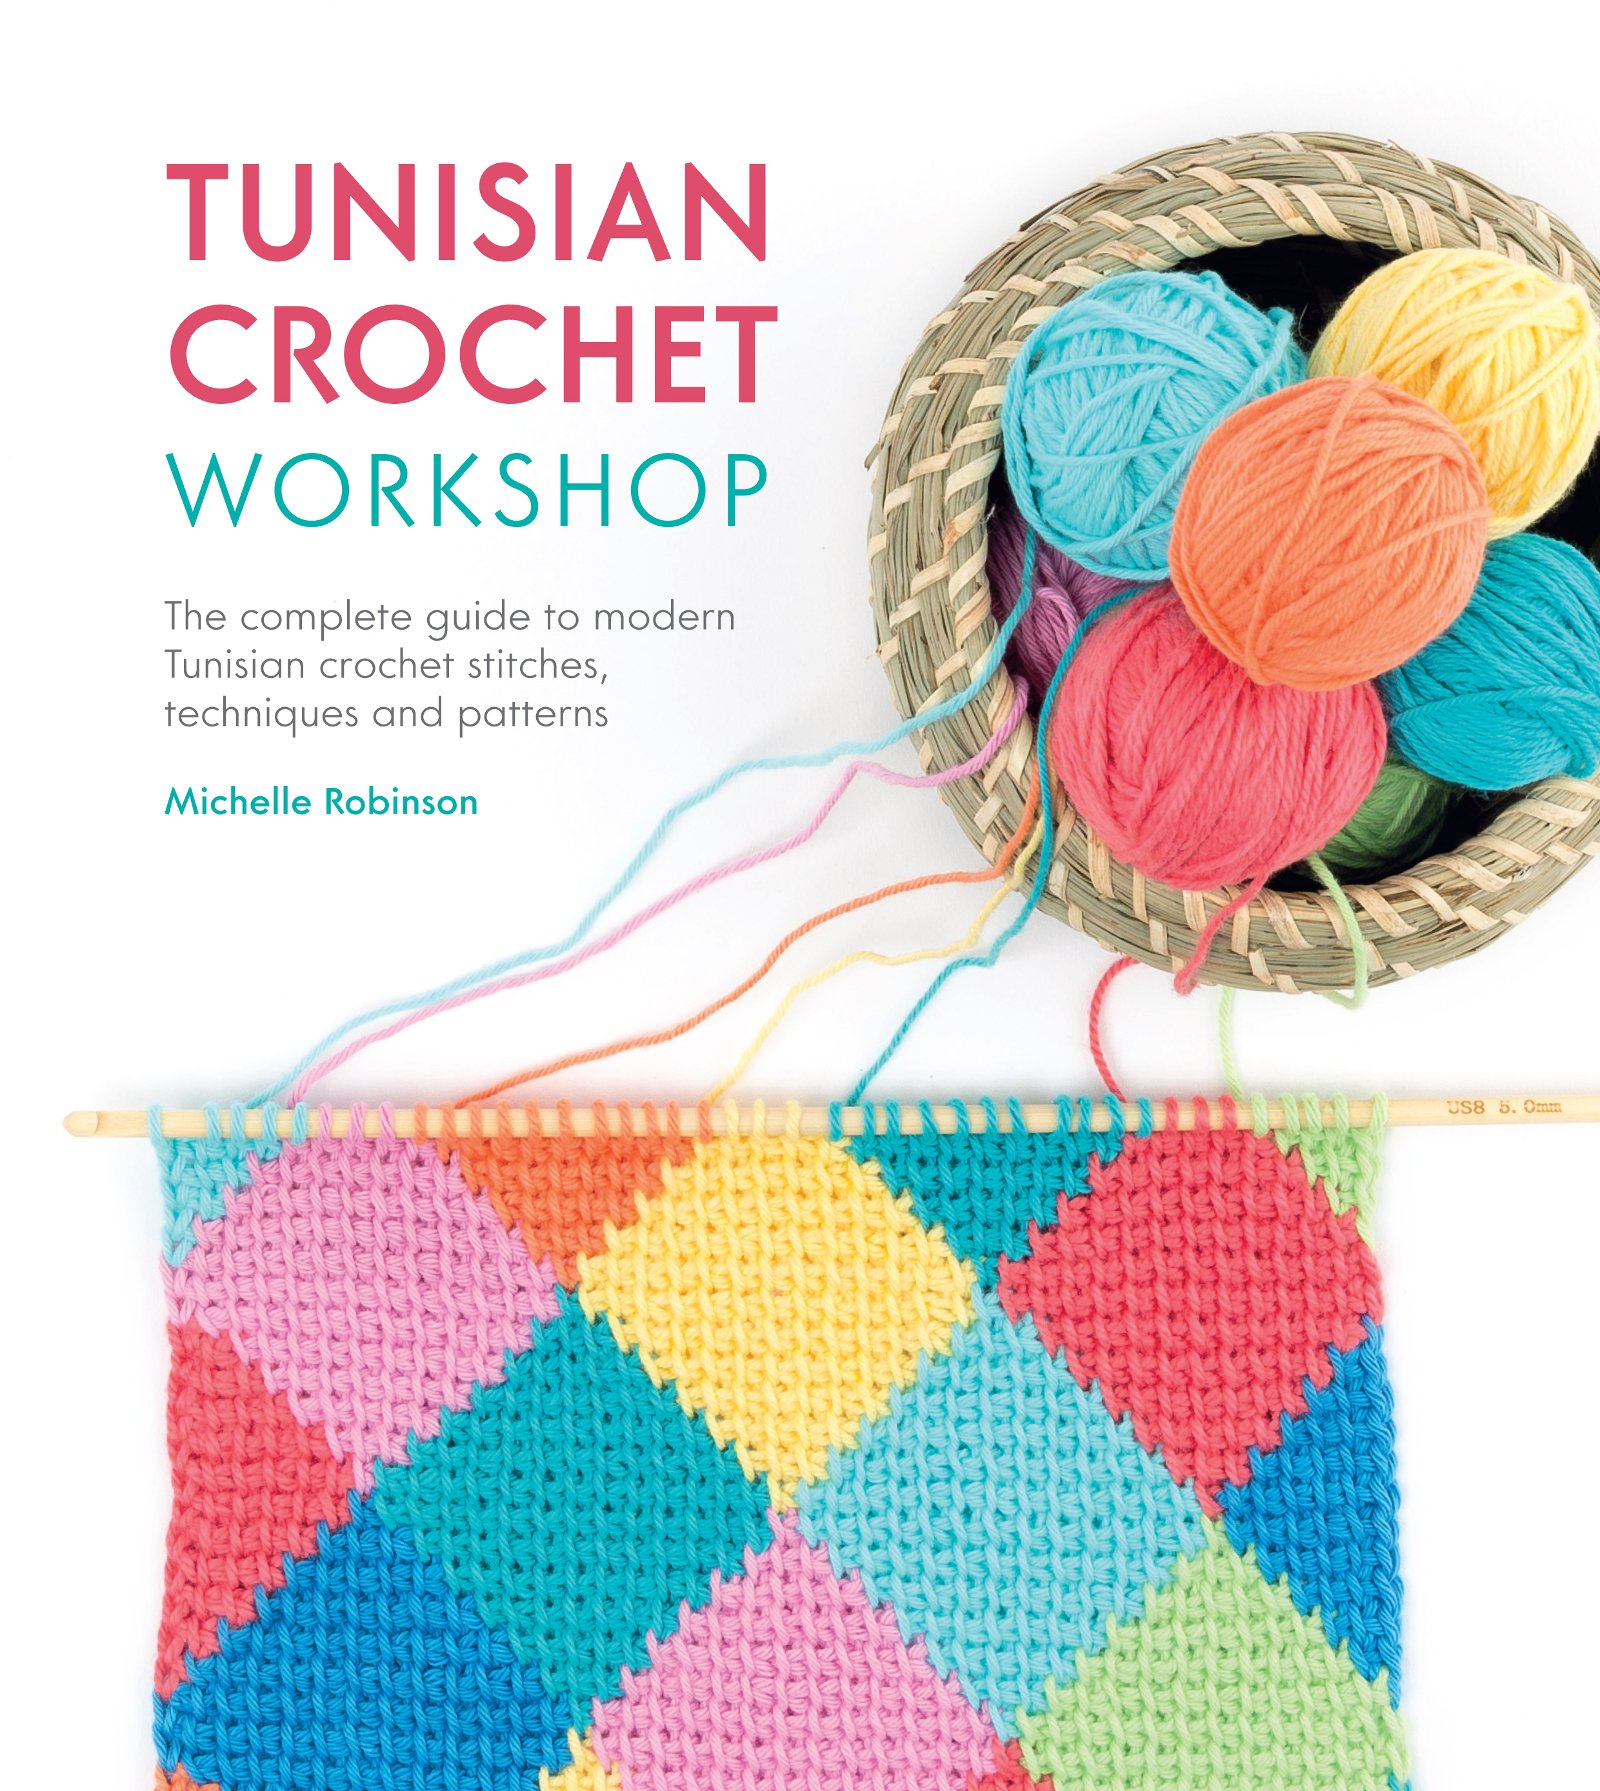 Tunisian Crochet Workshop: The Complete Guide to Modern